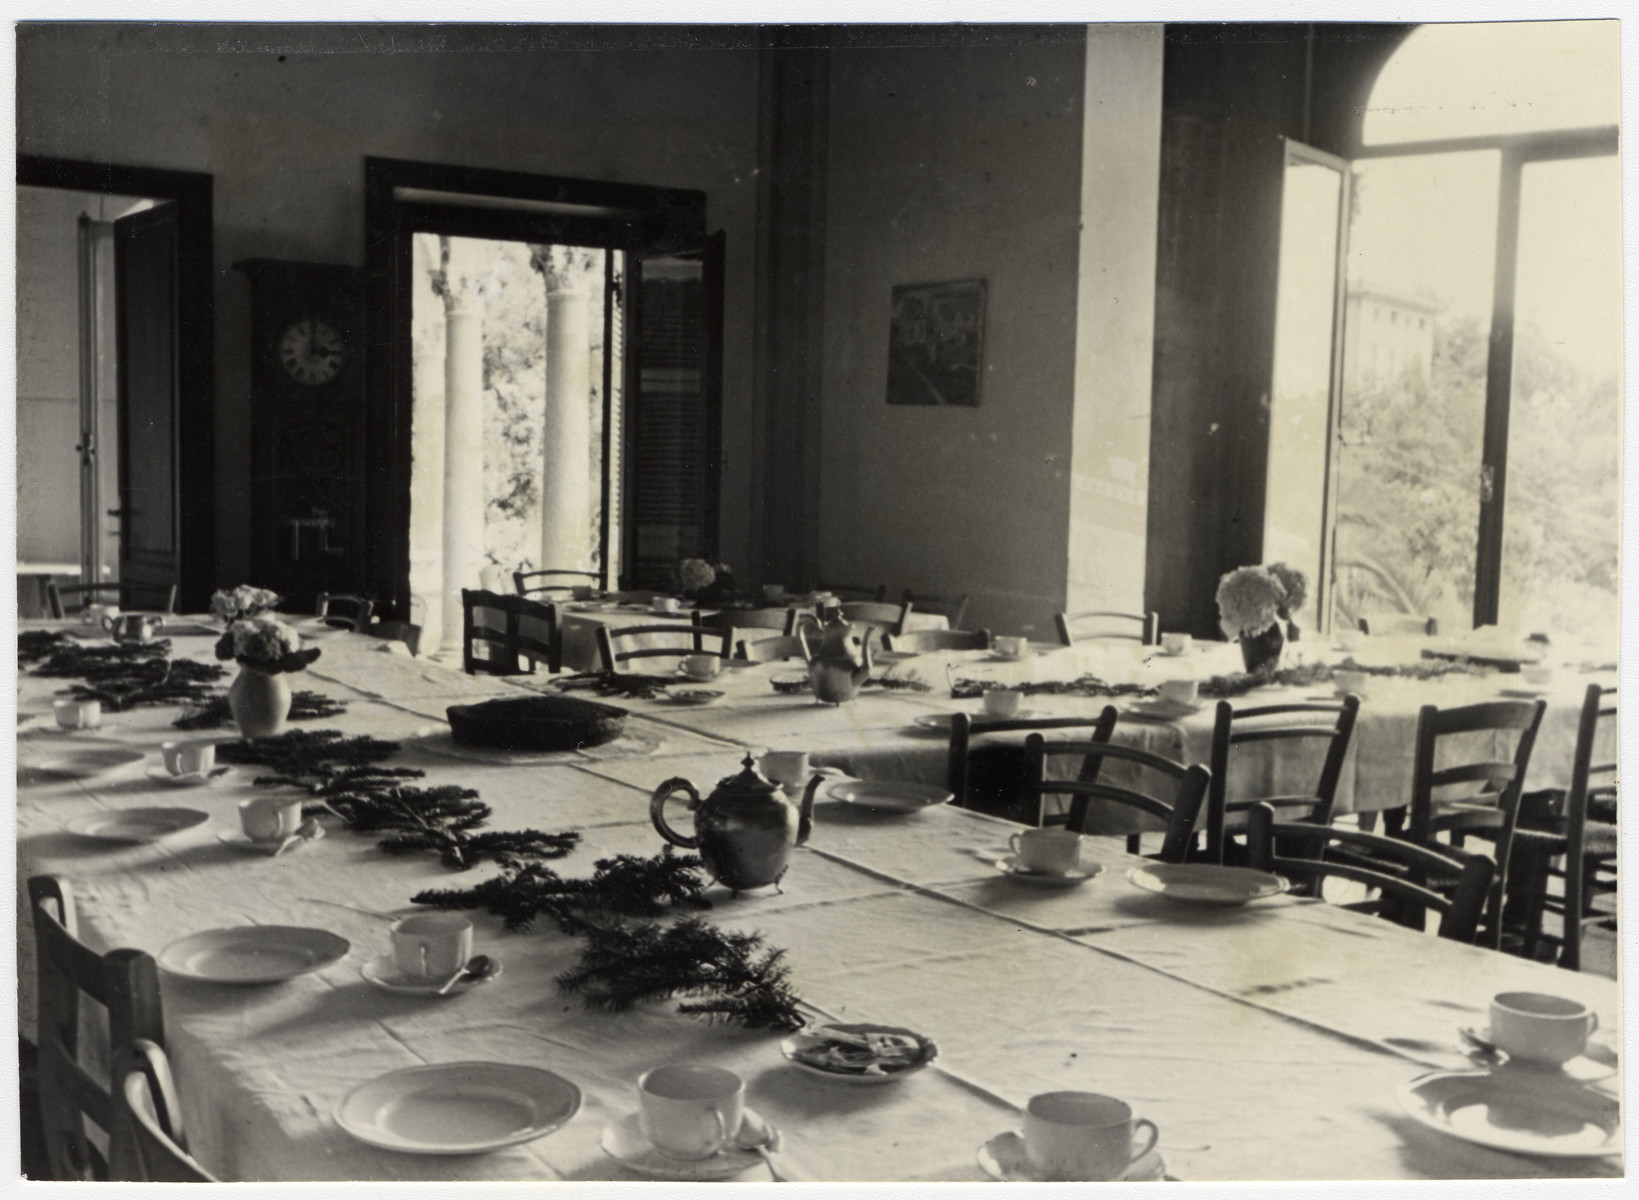 Interior view of the dining room of the Mediterranean School in Recco, Italy.